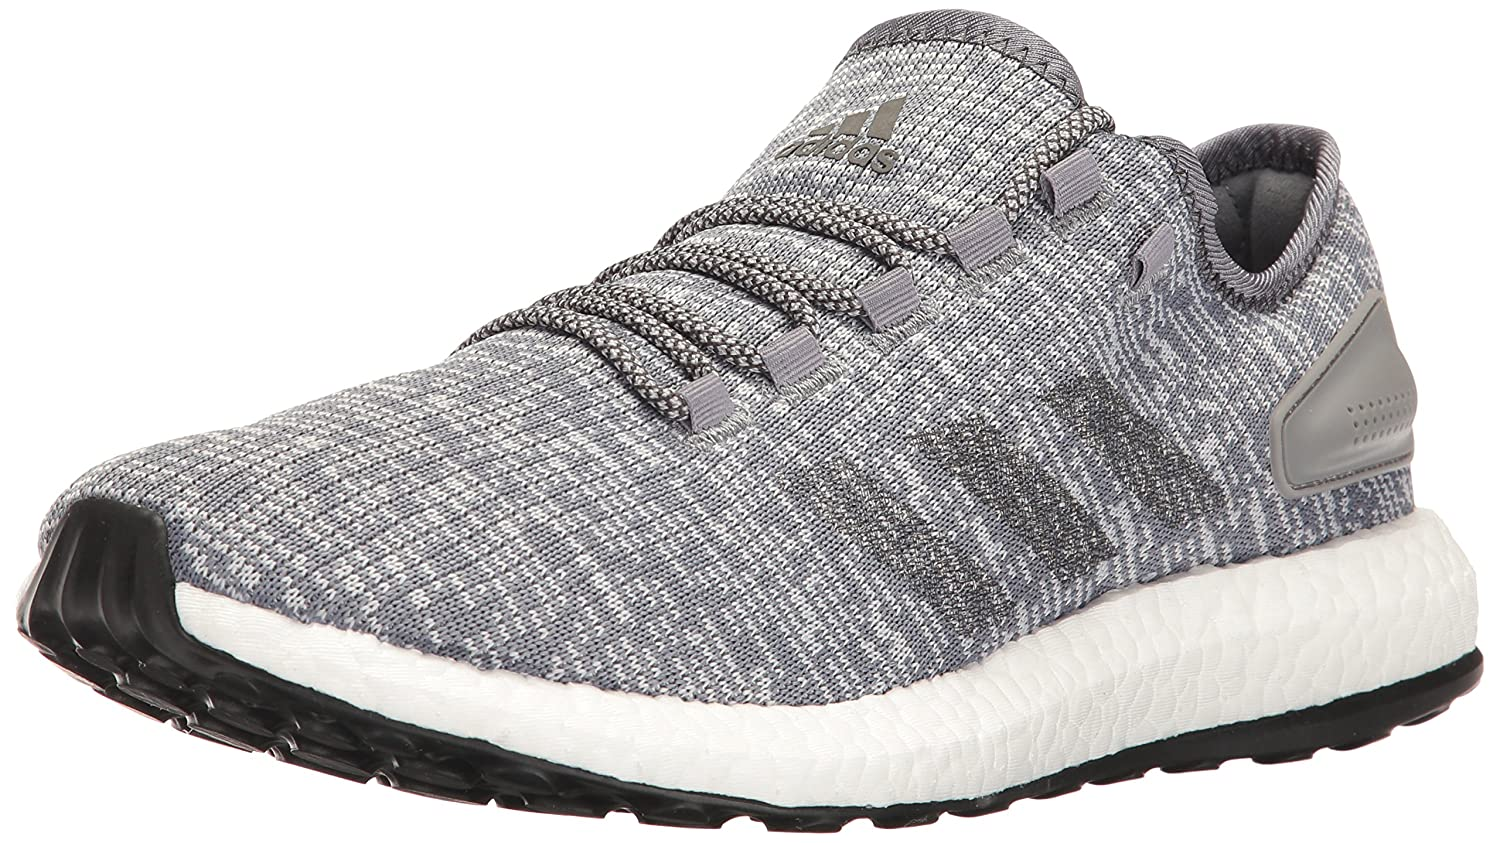 adidas Performance Men's Pureboost Running Shoe B01I0BDLFG 11 D(M) US|Grey/Dark Grey Heather/Clear Grey